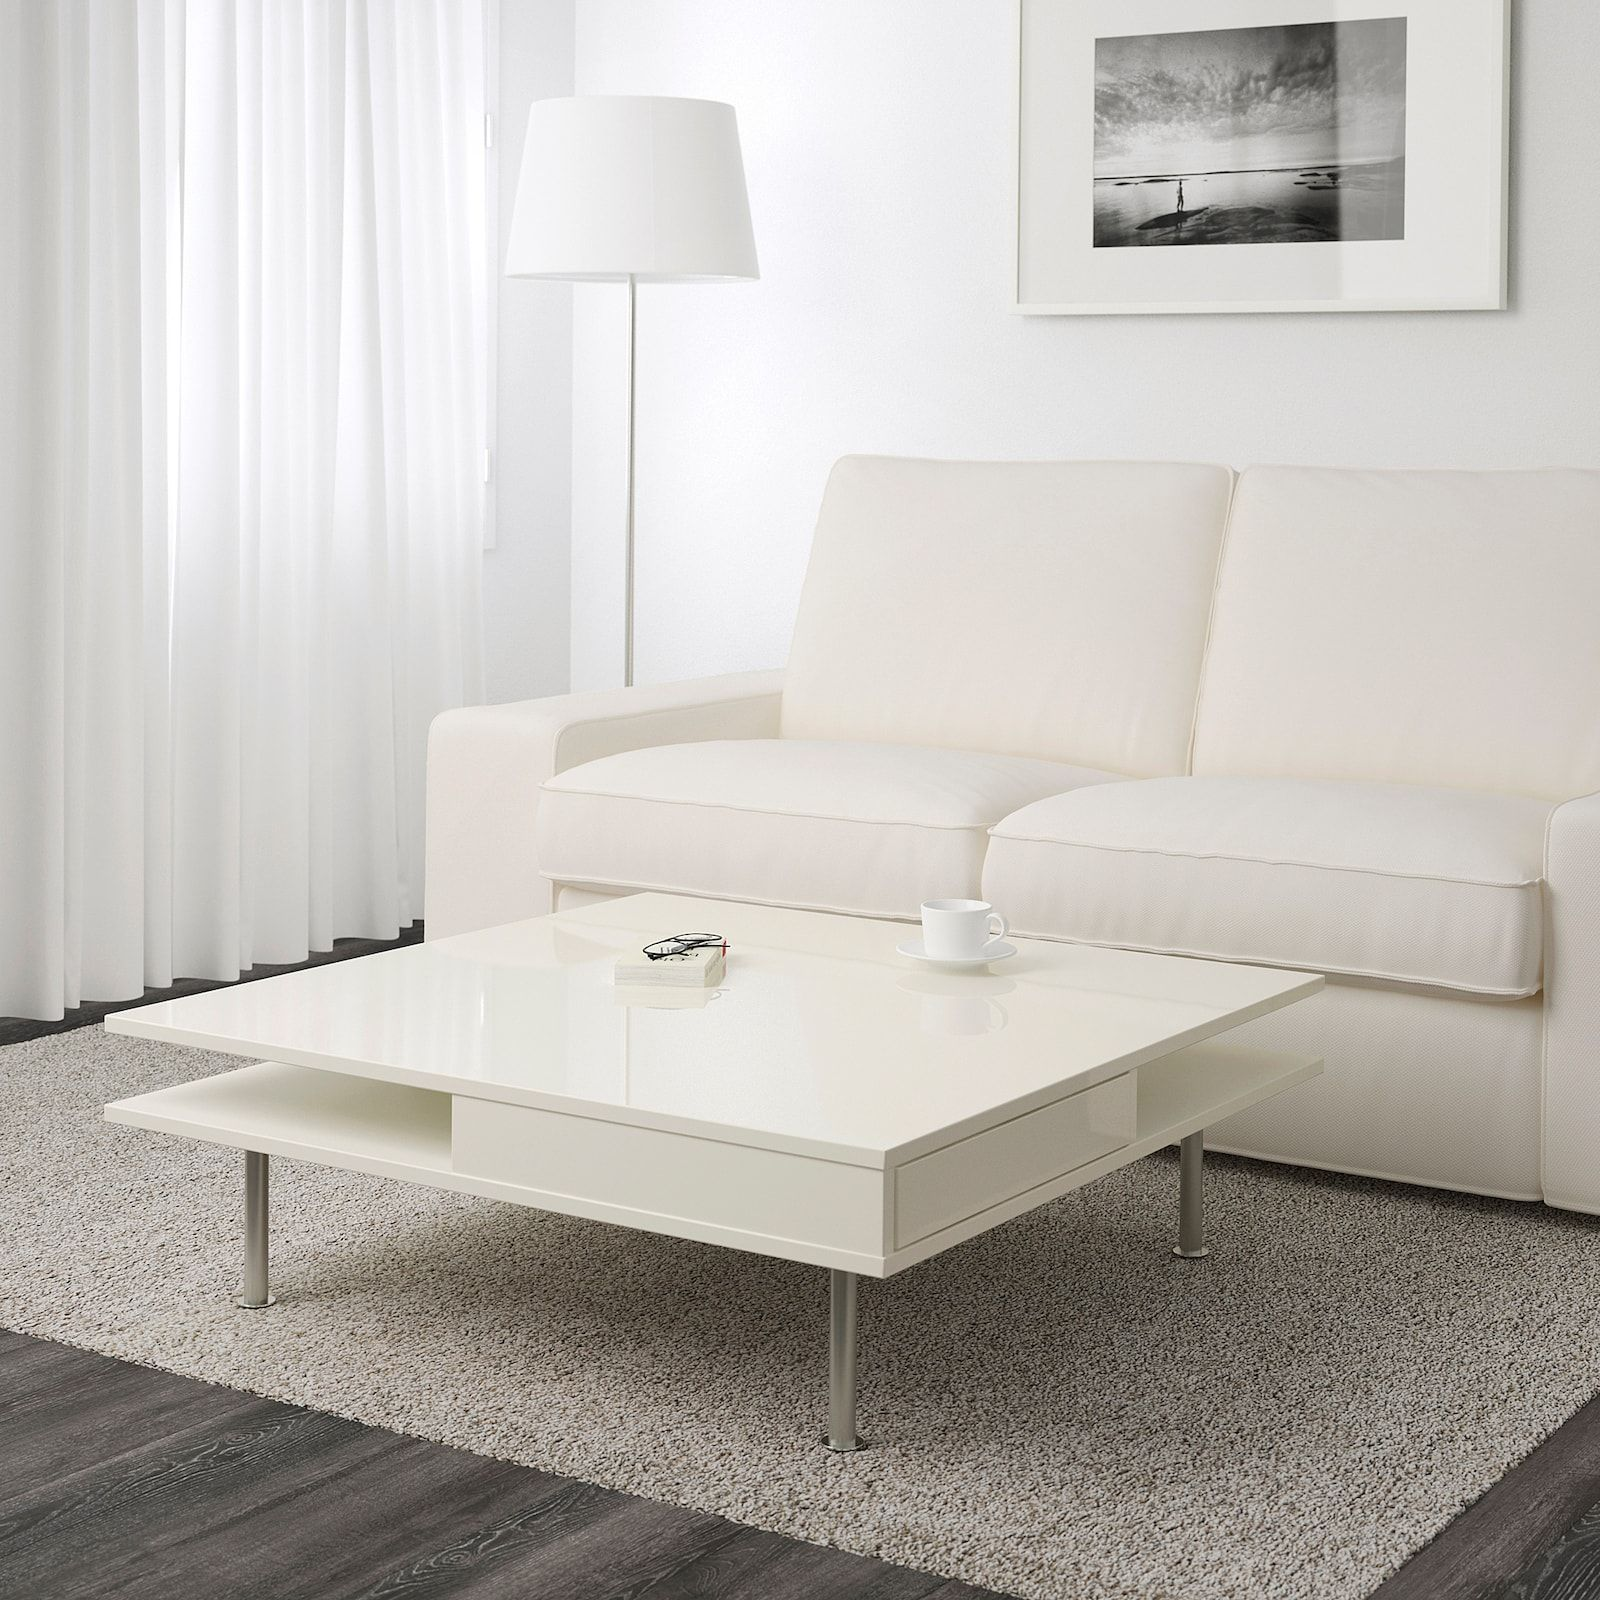 Tofteryd Coffee Table High Gloss White 37 3 8x37 3 8 Ikea Coffee Table Coffee Table High Gloss White Gloss Coffee Table [ 1600 x 1600 Pixel ]